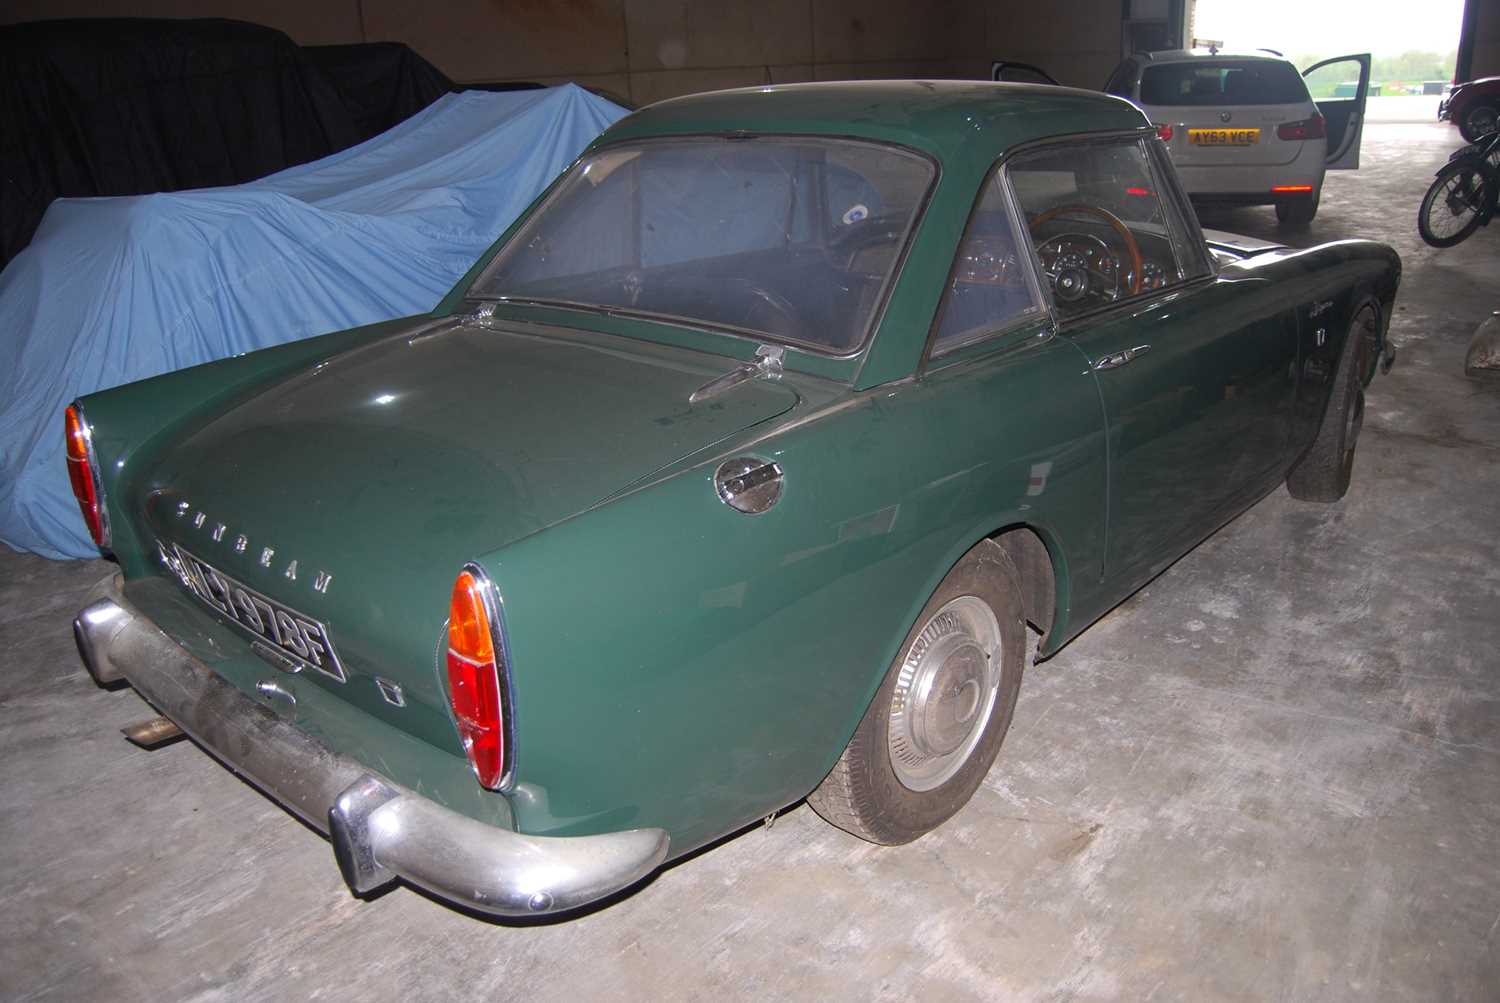 A 1968 Sunbeam Alpine Series V GT Reg No. NLY978F Chassis No. B395016307GTOD Green with Black - Image 11 of 43